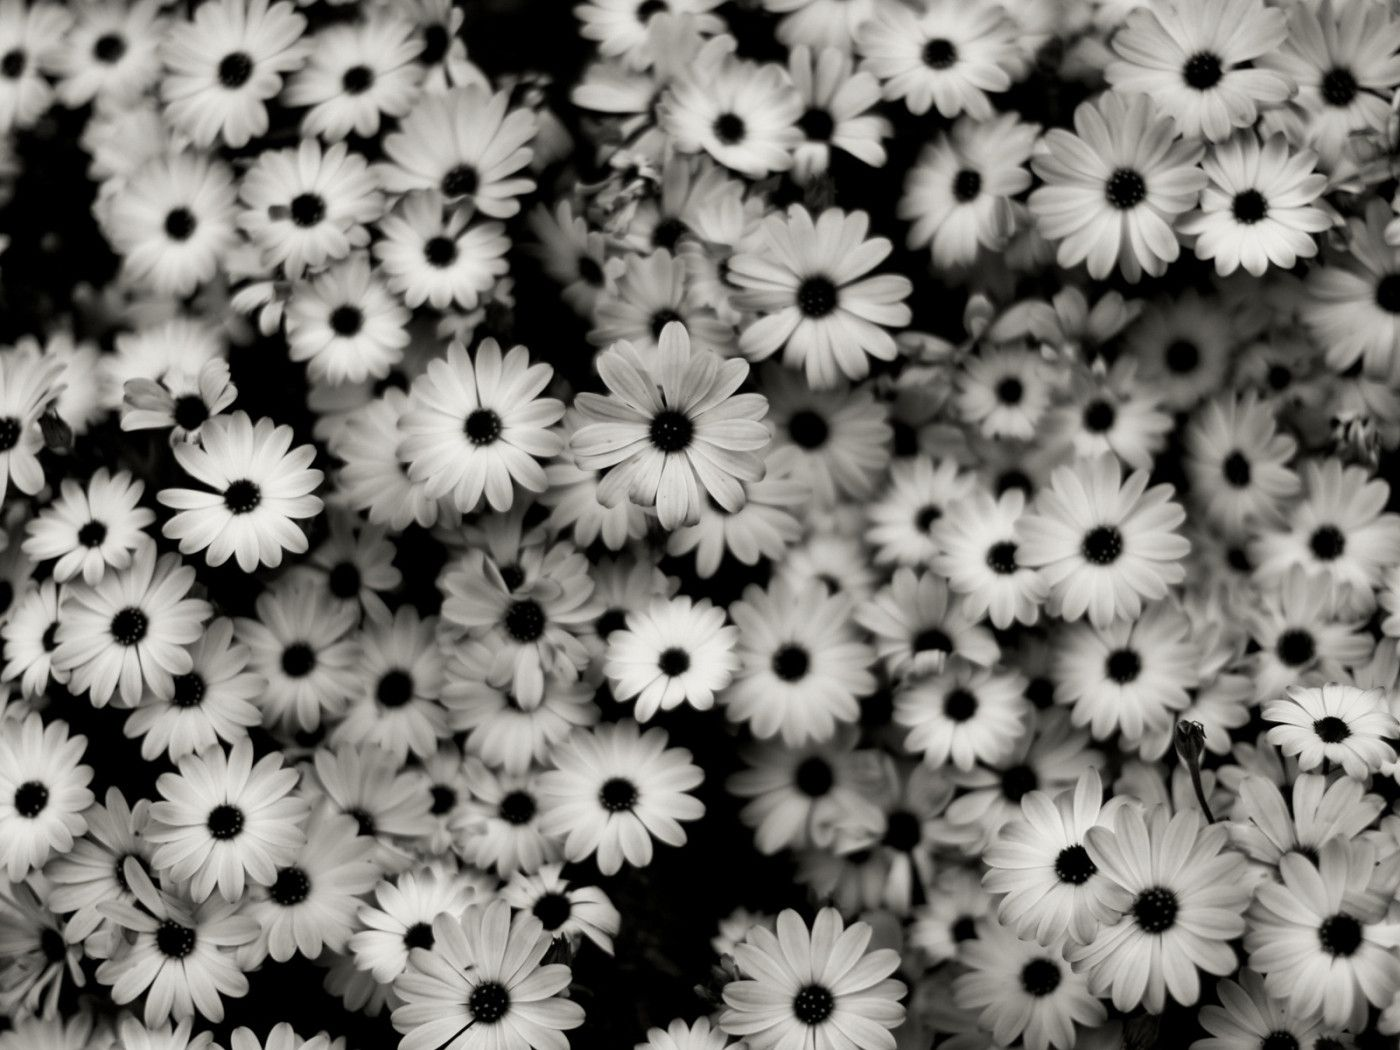 Pictures Of Black And White Flowers Google Search Pictures Of